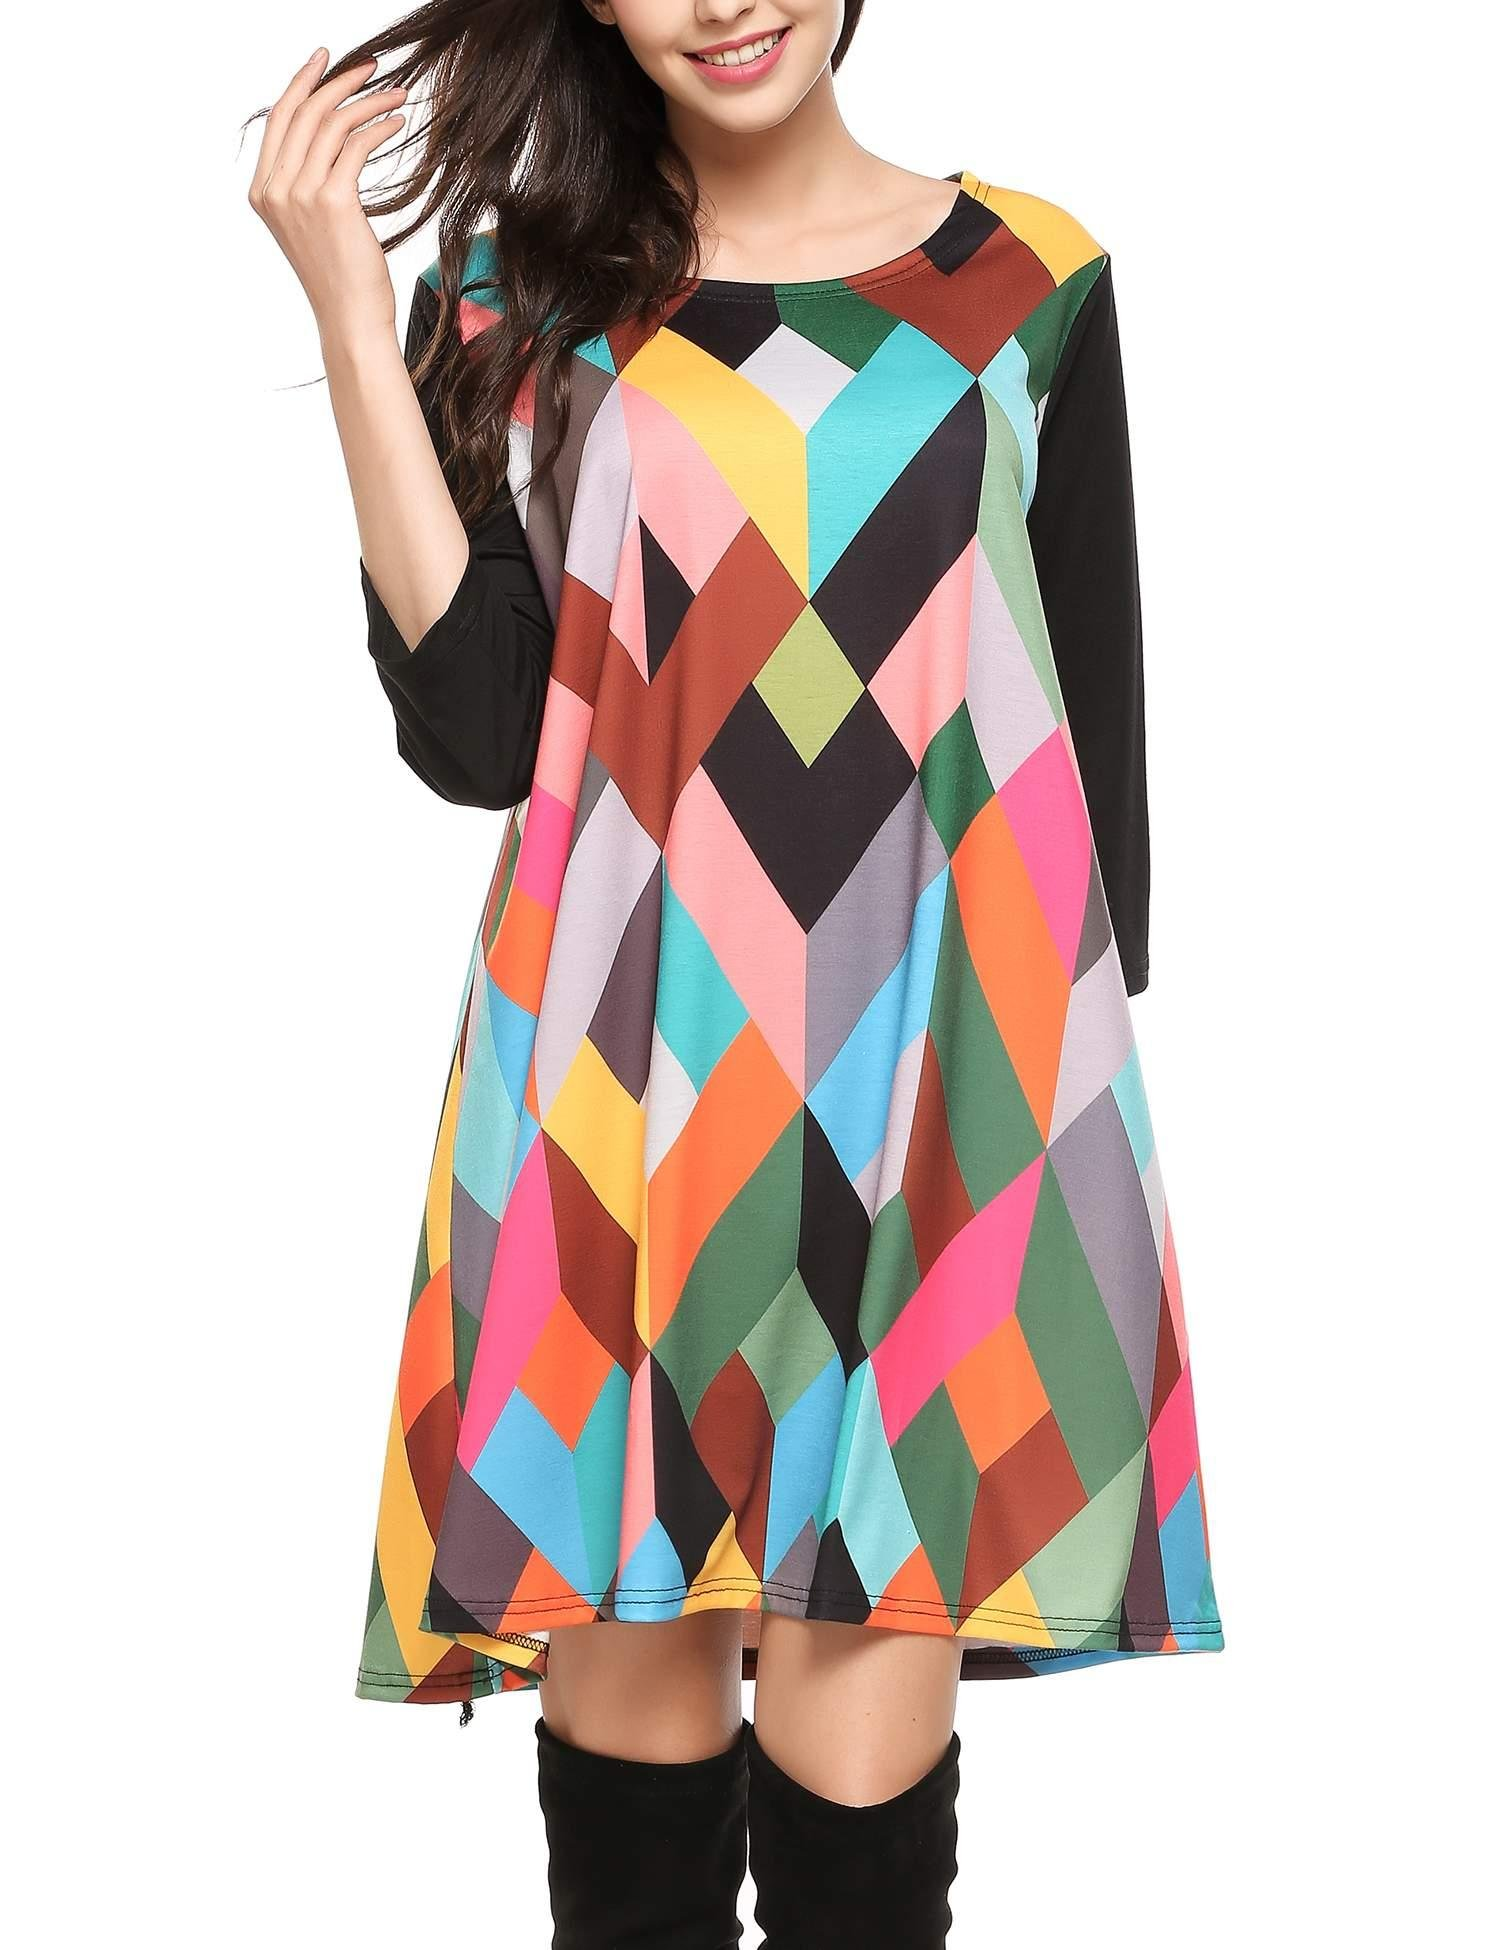 Zeagoo Women\'s Geometric Prints Loose Casual Summer Fall Tunic Top Dress Black XXL